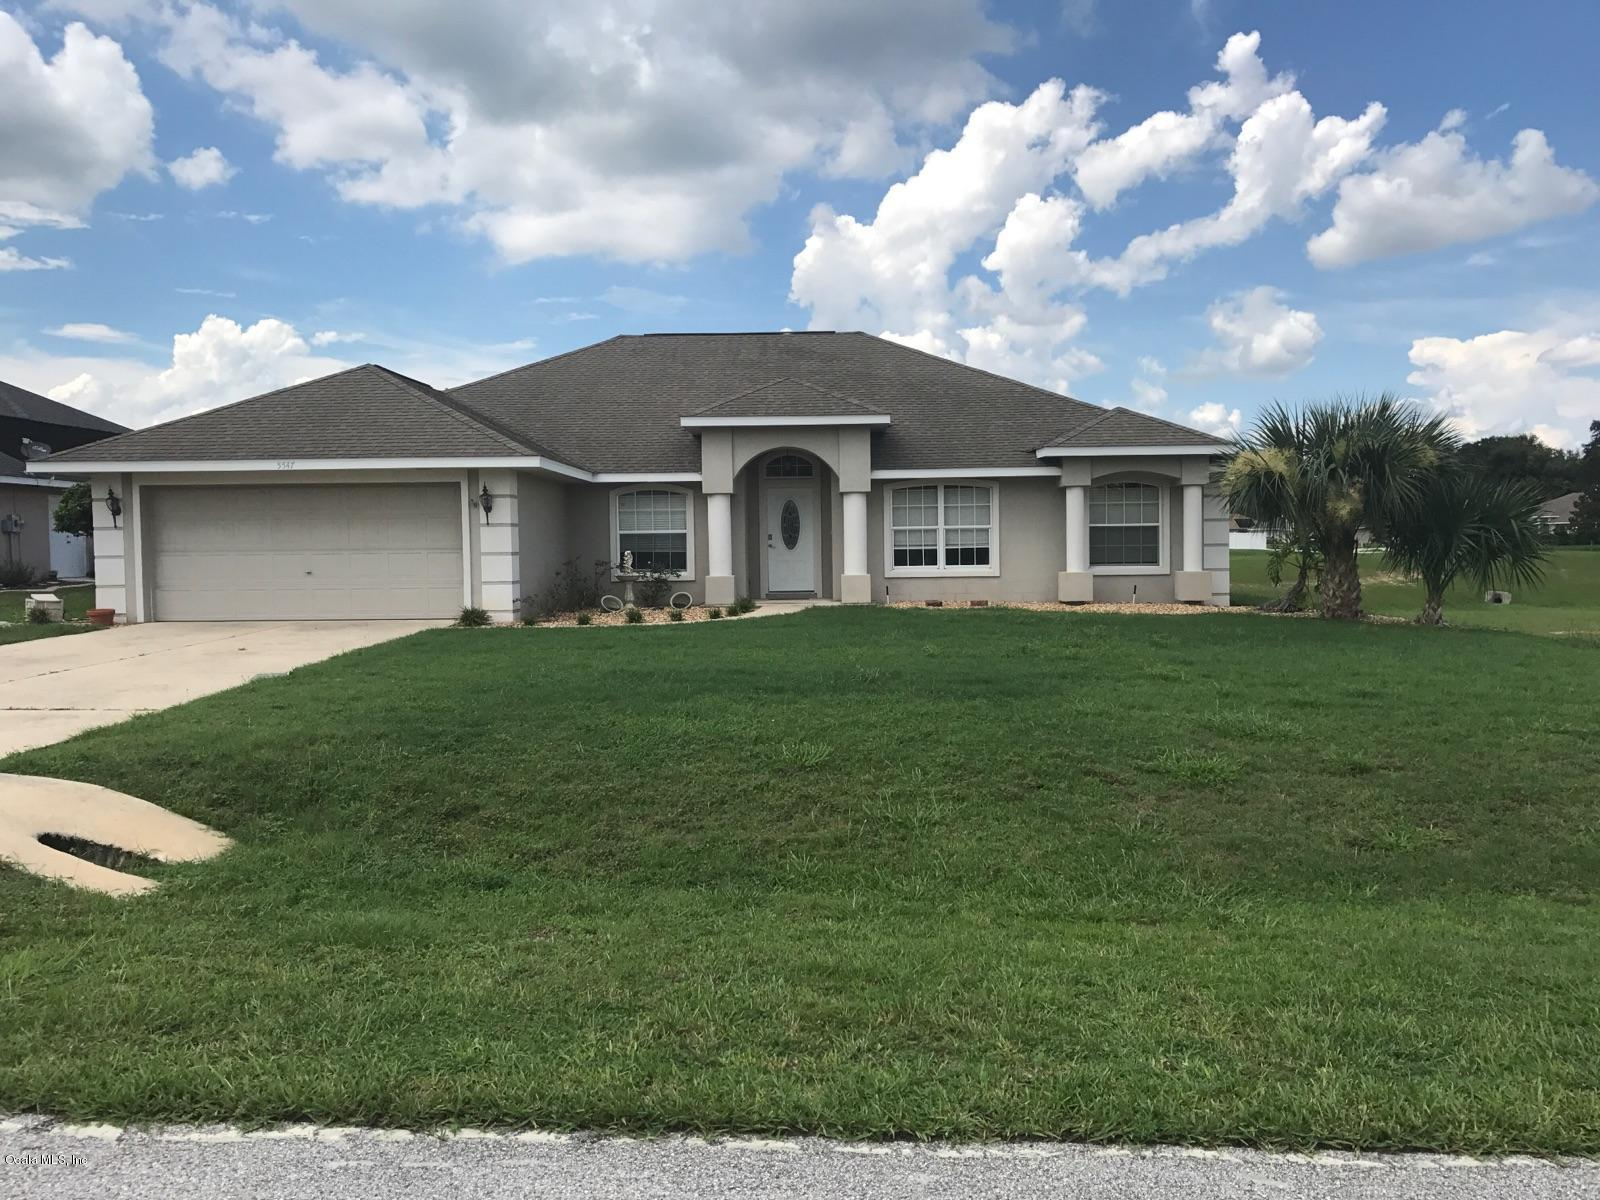 5547 SW 82ND PLACE, OCALA, FL 34476